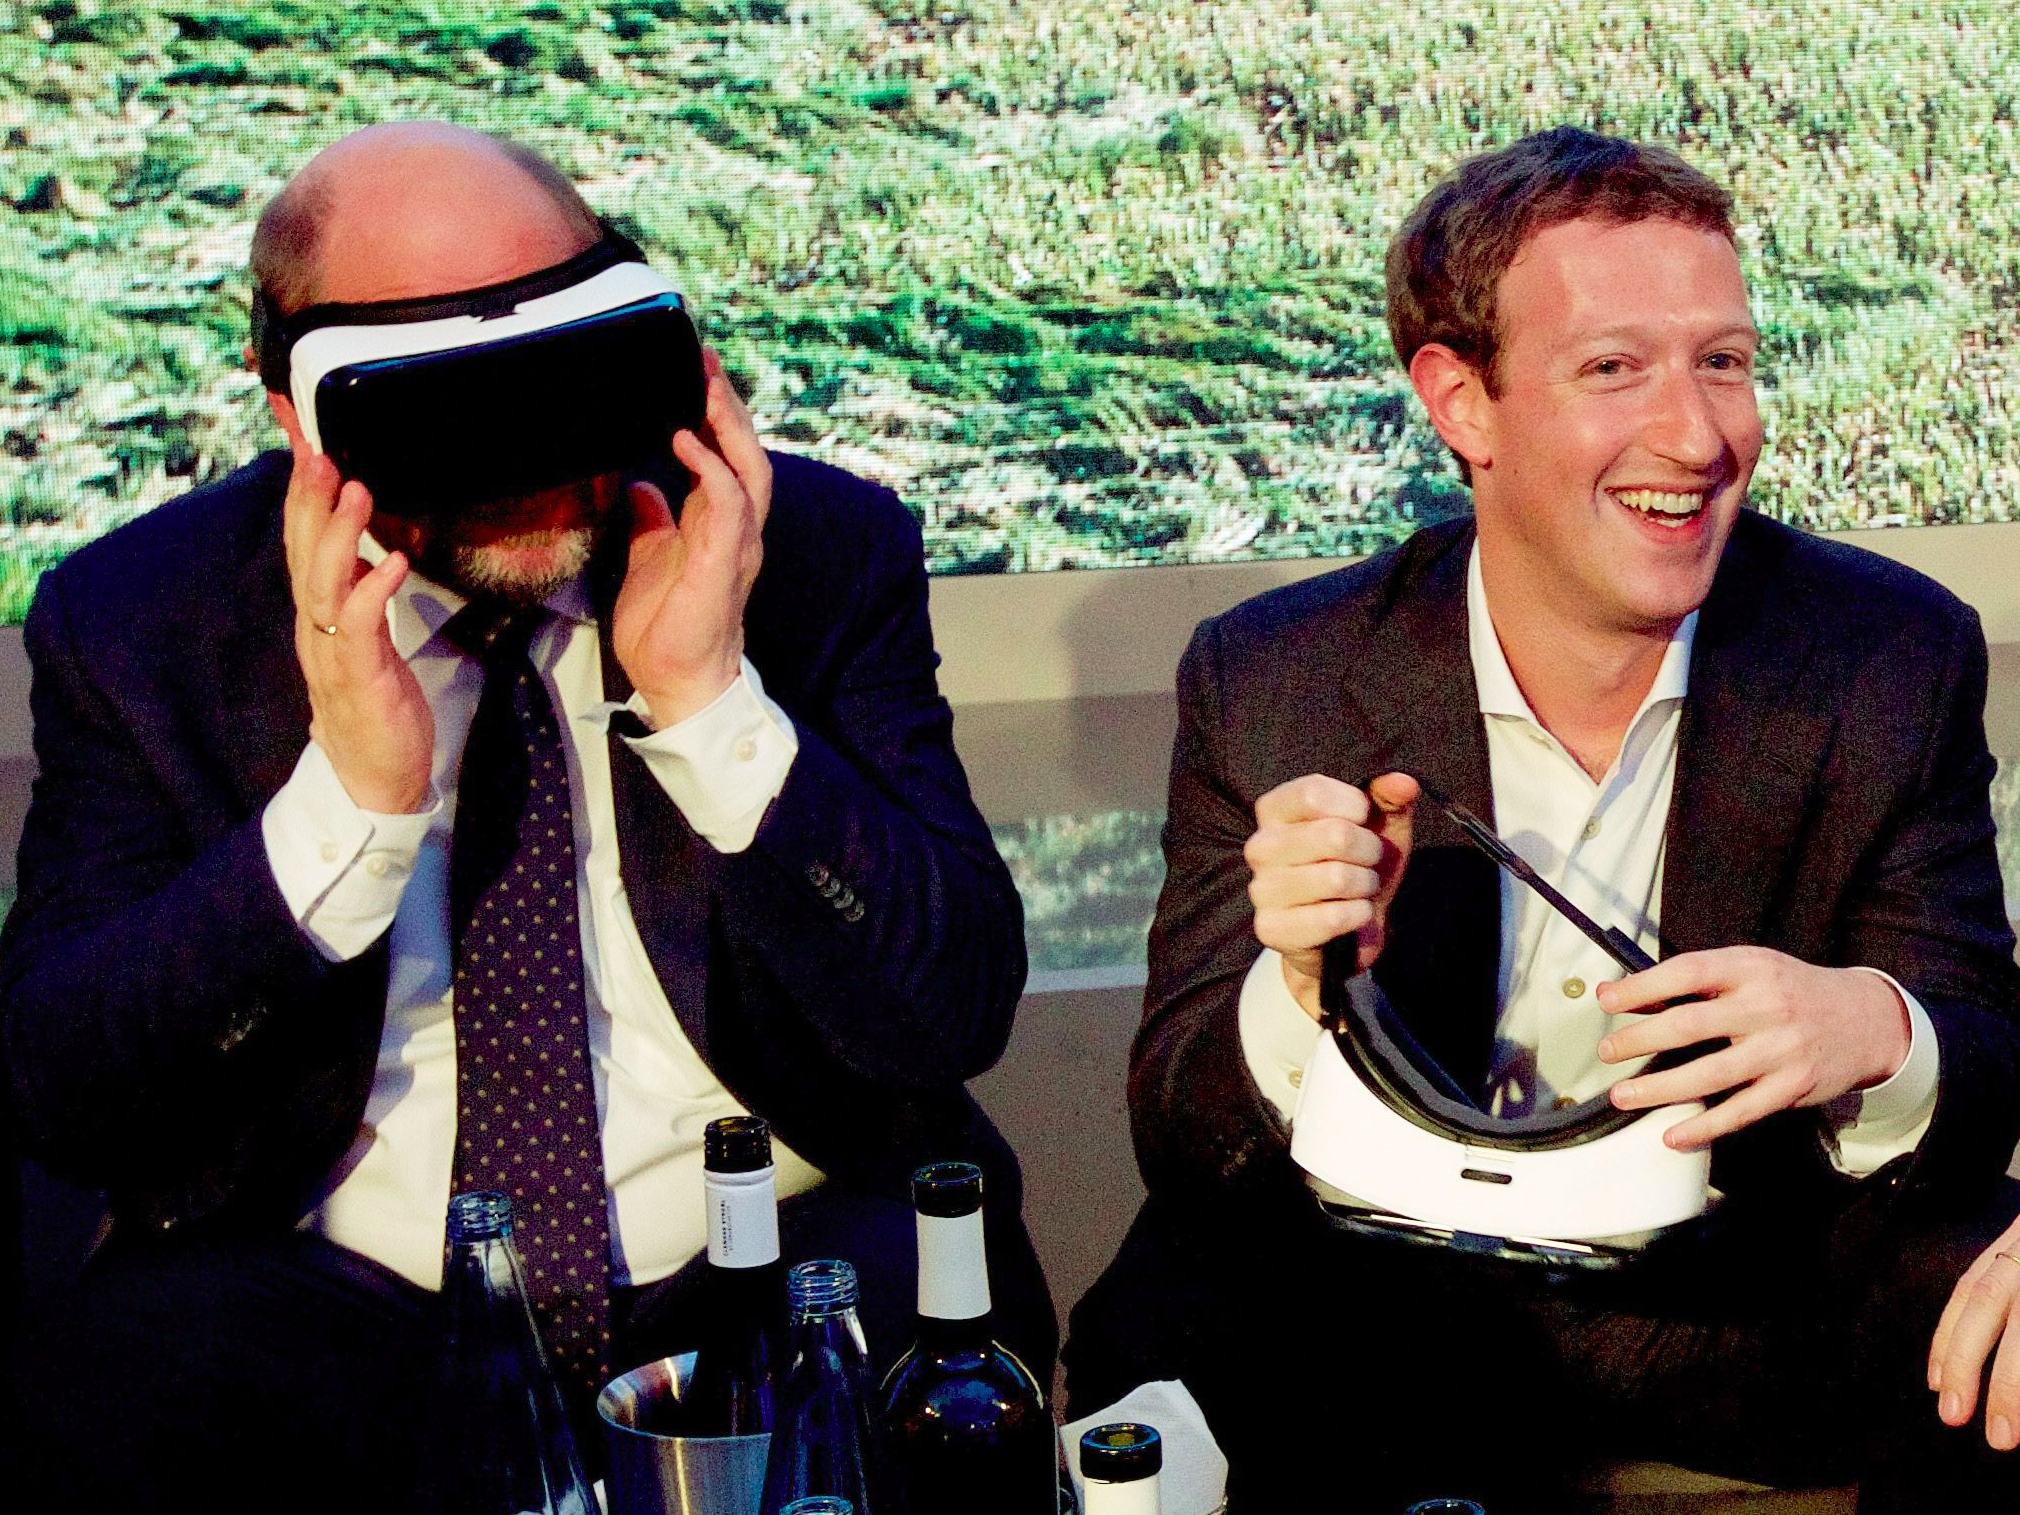 mark zuckerberg facebook happy smiling virtual reality oculus